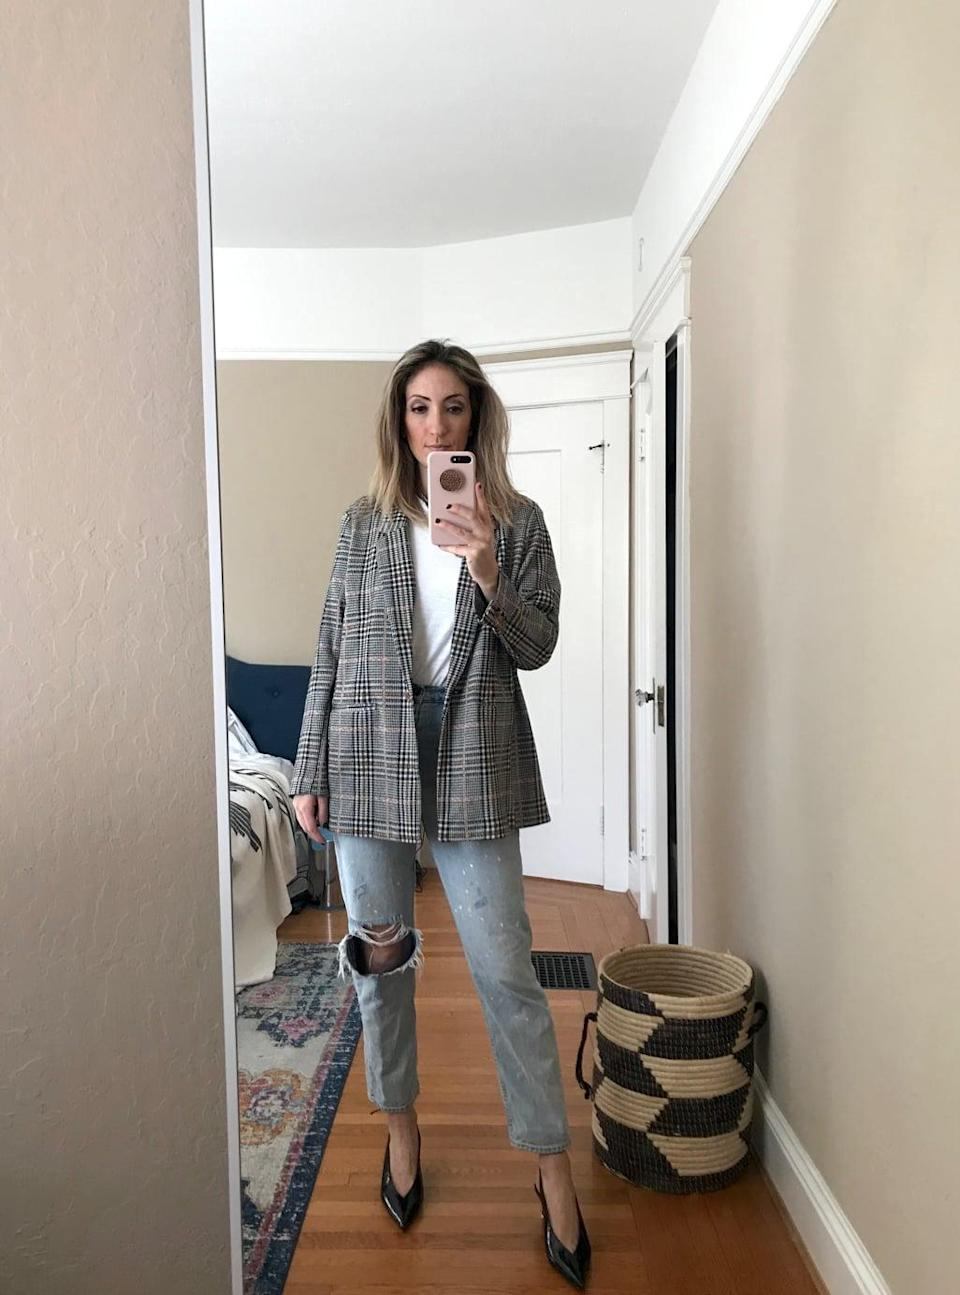 """<p><strong>The item:</strong> <span>Old Navy Patterned Boyfriend Blazer</span> (Sold Out)</p> <p><strong>What our editor said: </strong>""""I knew as soon as I unfurled the jacket from its packaging, this is exactly how I wanted to style it. The jacket is way softer than it looks on-site - and to be honest, much softer than every other blazer I own - so I wasn't sure how it would hang. But it blew my mind. It feels like a flannel on but wears like a blazer. This will definitely become my go-to spring look. It's essentially just jeans and a t-shirt!"""" - RB</p> <p>If you want to read more, here is the <a href=""""http://www.popsugar.com/fashion/best-boyfriend-blazer-at-old-navy-47231914"""" class=""""link rapid-noclick-resp"""" rel=""""nofollow noopener"""" target=""""_blank"""" data-ylk=""""slk:complete review"""">complete review</a>.</p>"""